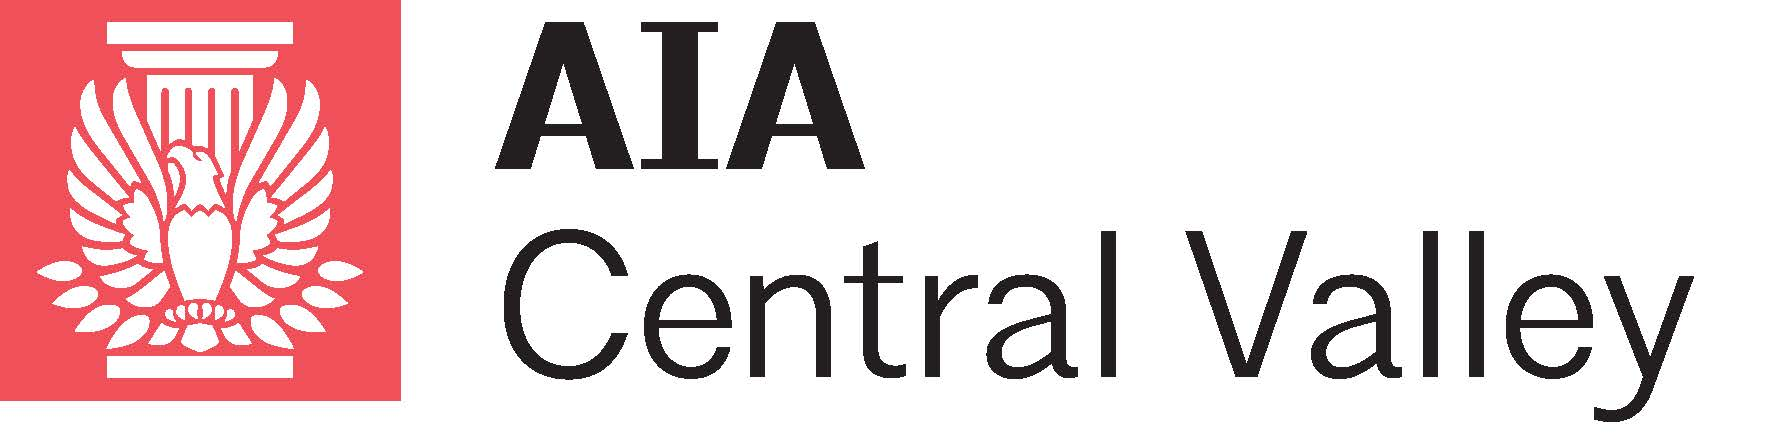 AIA Central Valley